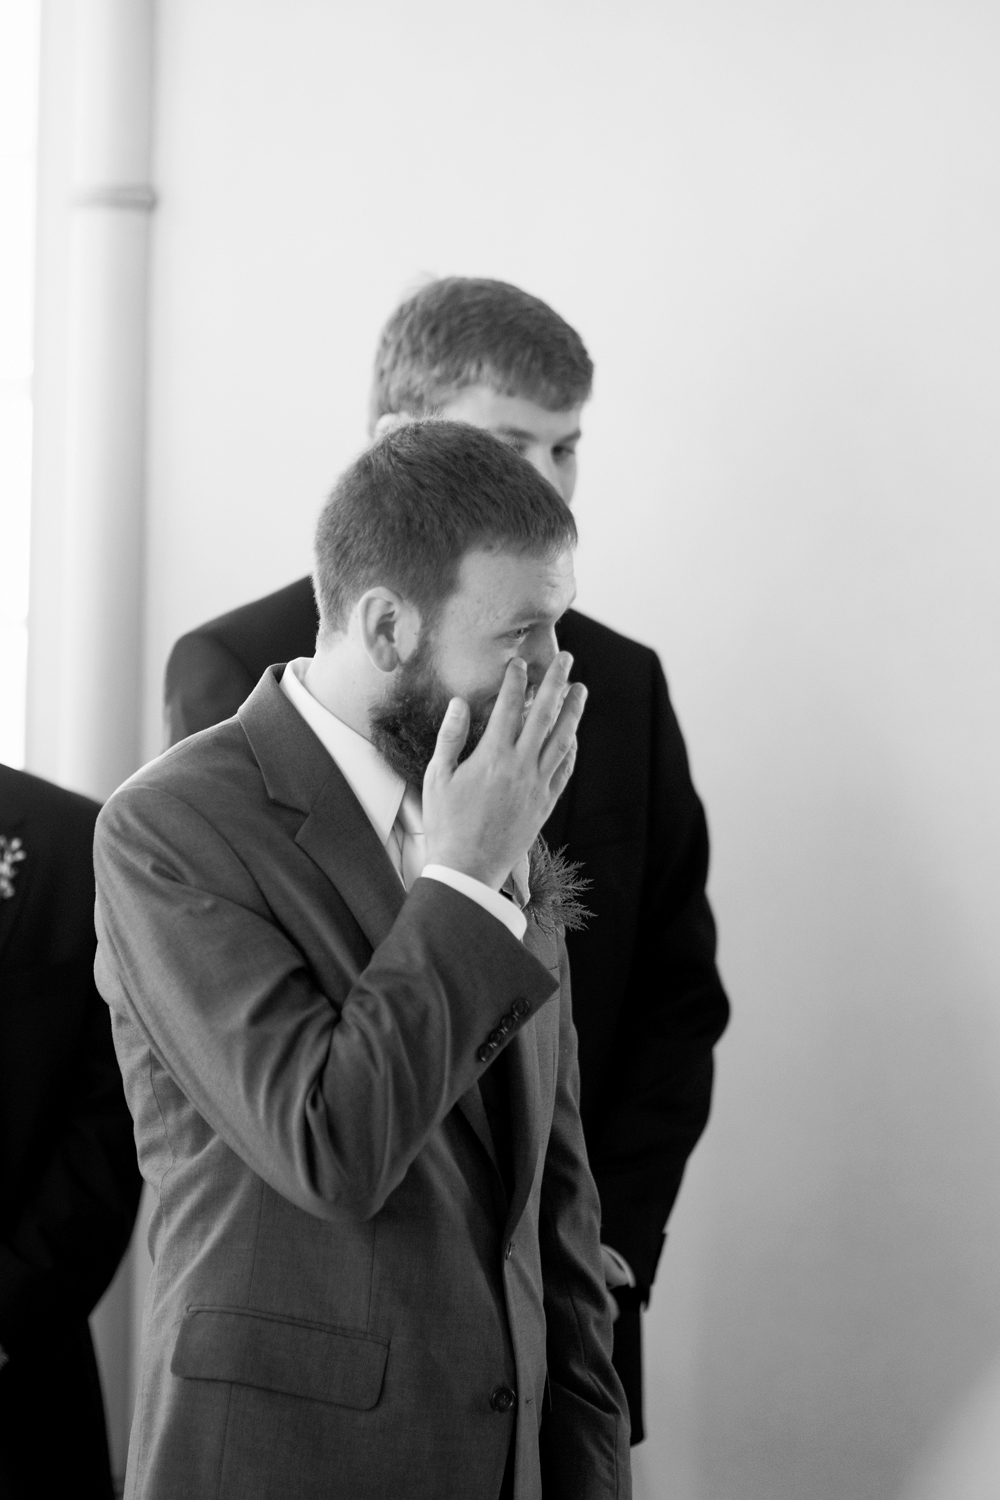 Groom wipes a tear from his cheek as his bride walks down the aisle